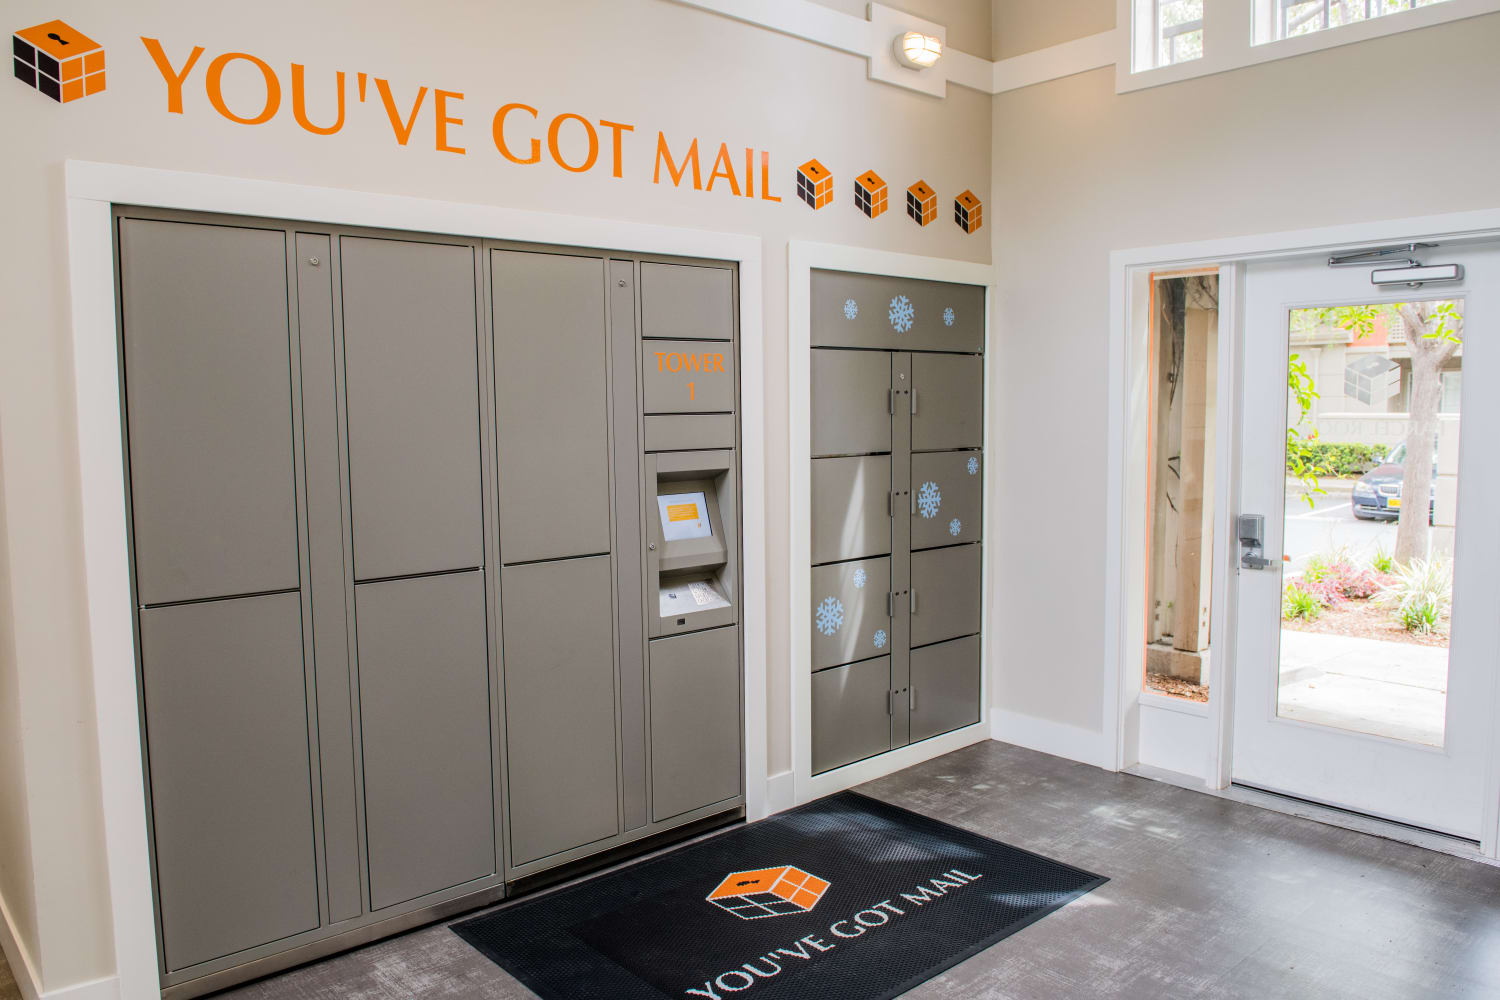 Mail room at Bella Vista Apartments in Santa Clara, California